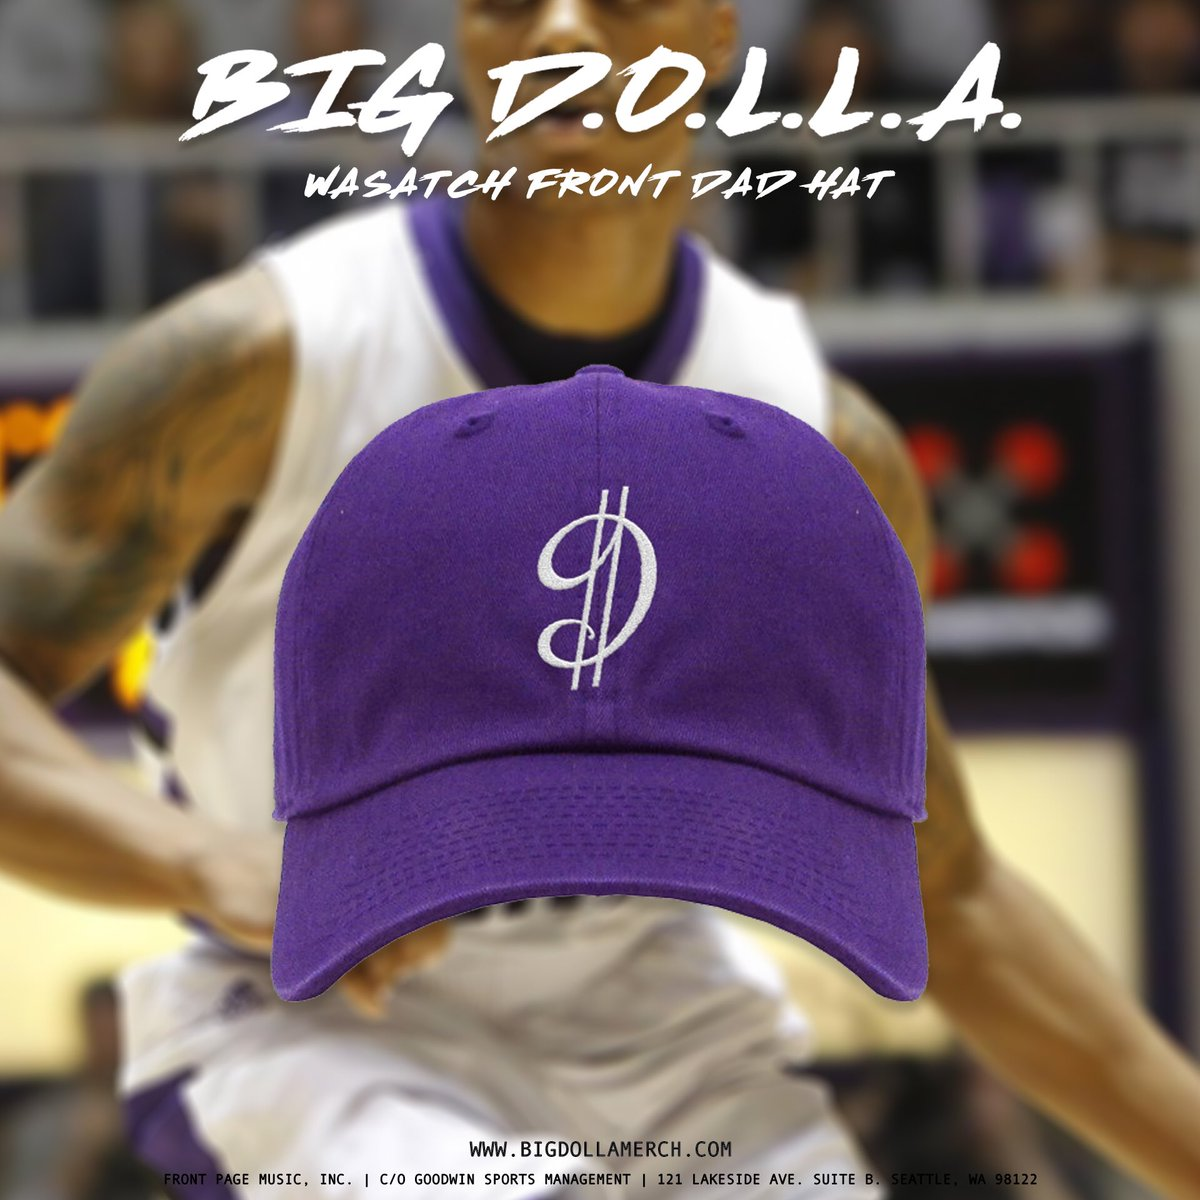 I'm headed to @weberstate next week for the @WeberStateMBB alumni game, so I created a Bleed Purple/Wasatch Front colorway of my D$ logo dad cap for all the Weber folks looking to support #BigDOLLA. Hit http://BigDOLLAmerch.com to get the bundle!